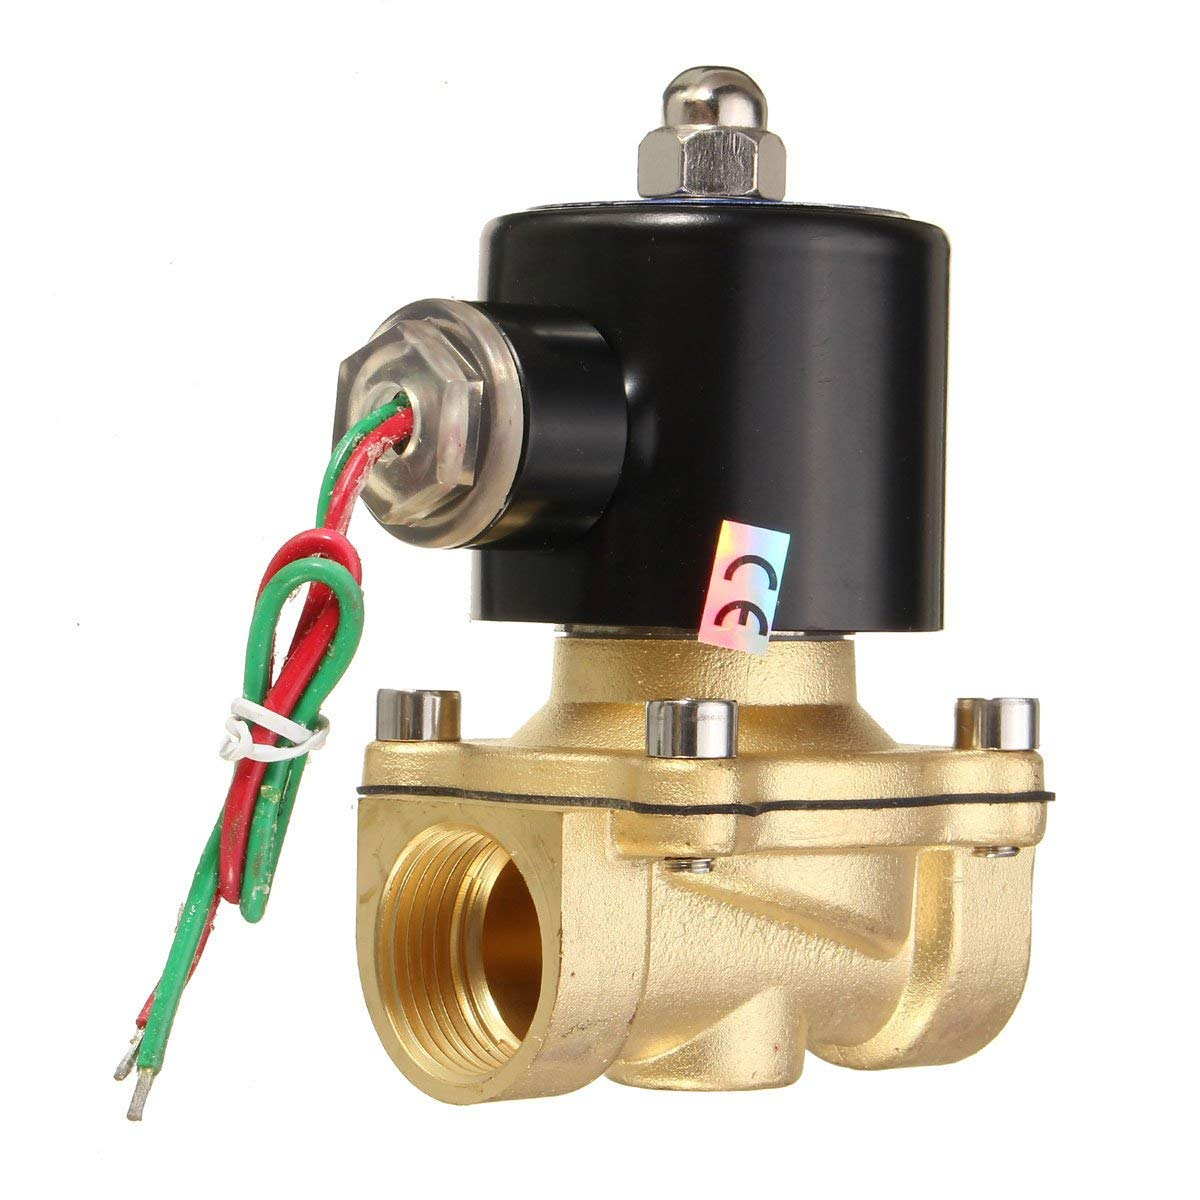 2W-200-20 AC220V 3/4inch Electric Solenoid Valve Water Air Fuels - Electrical Gadgets & Tools Electrical Pump & Valve - 1 x 2W-200-20 AC220V